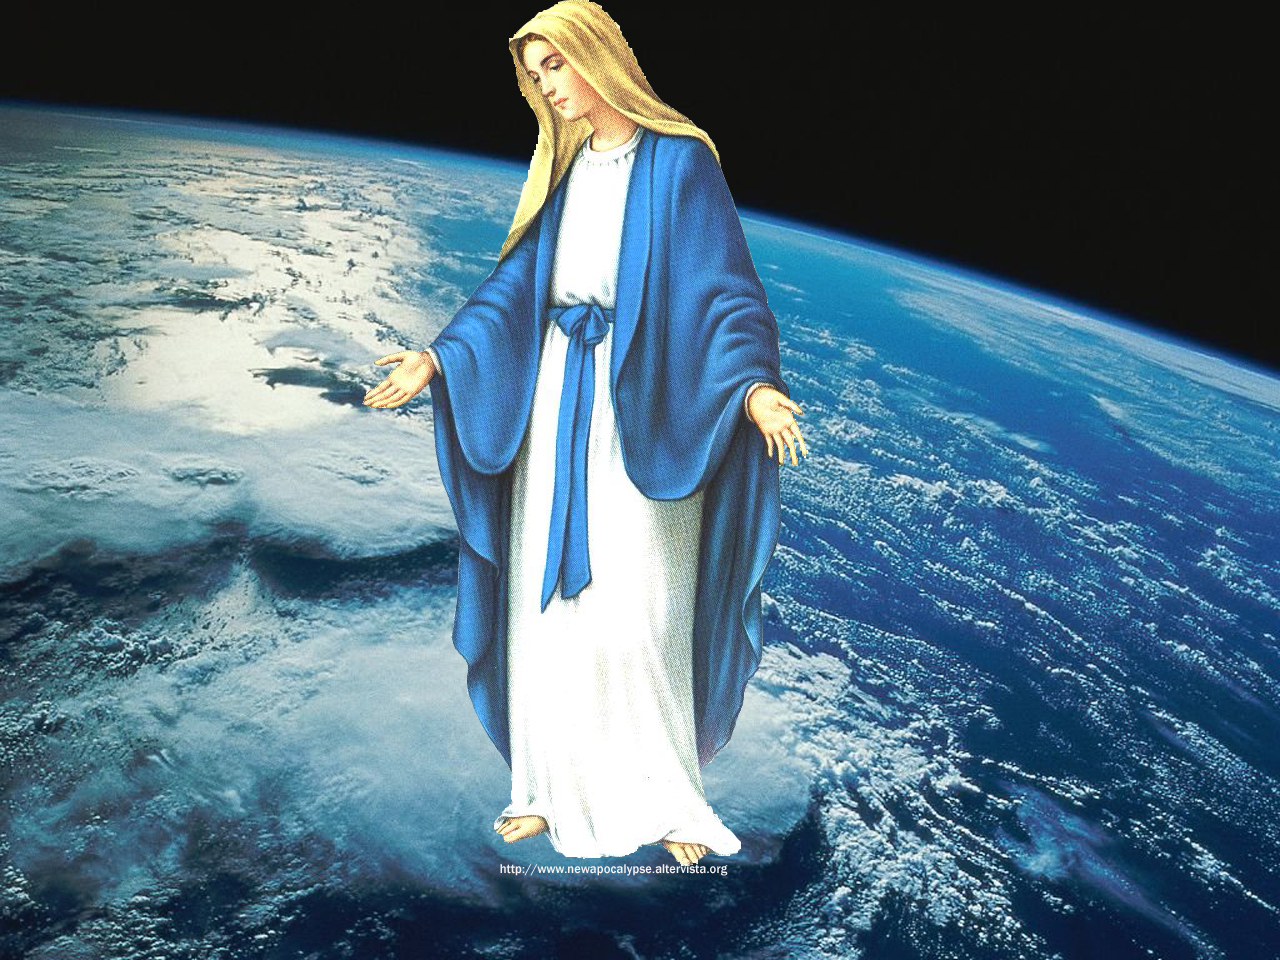 earth_2_Wallpaper_fondo_schermo_Maria_Vergine_santissima_immacolata_Mary_immaculate_conception_1280